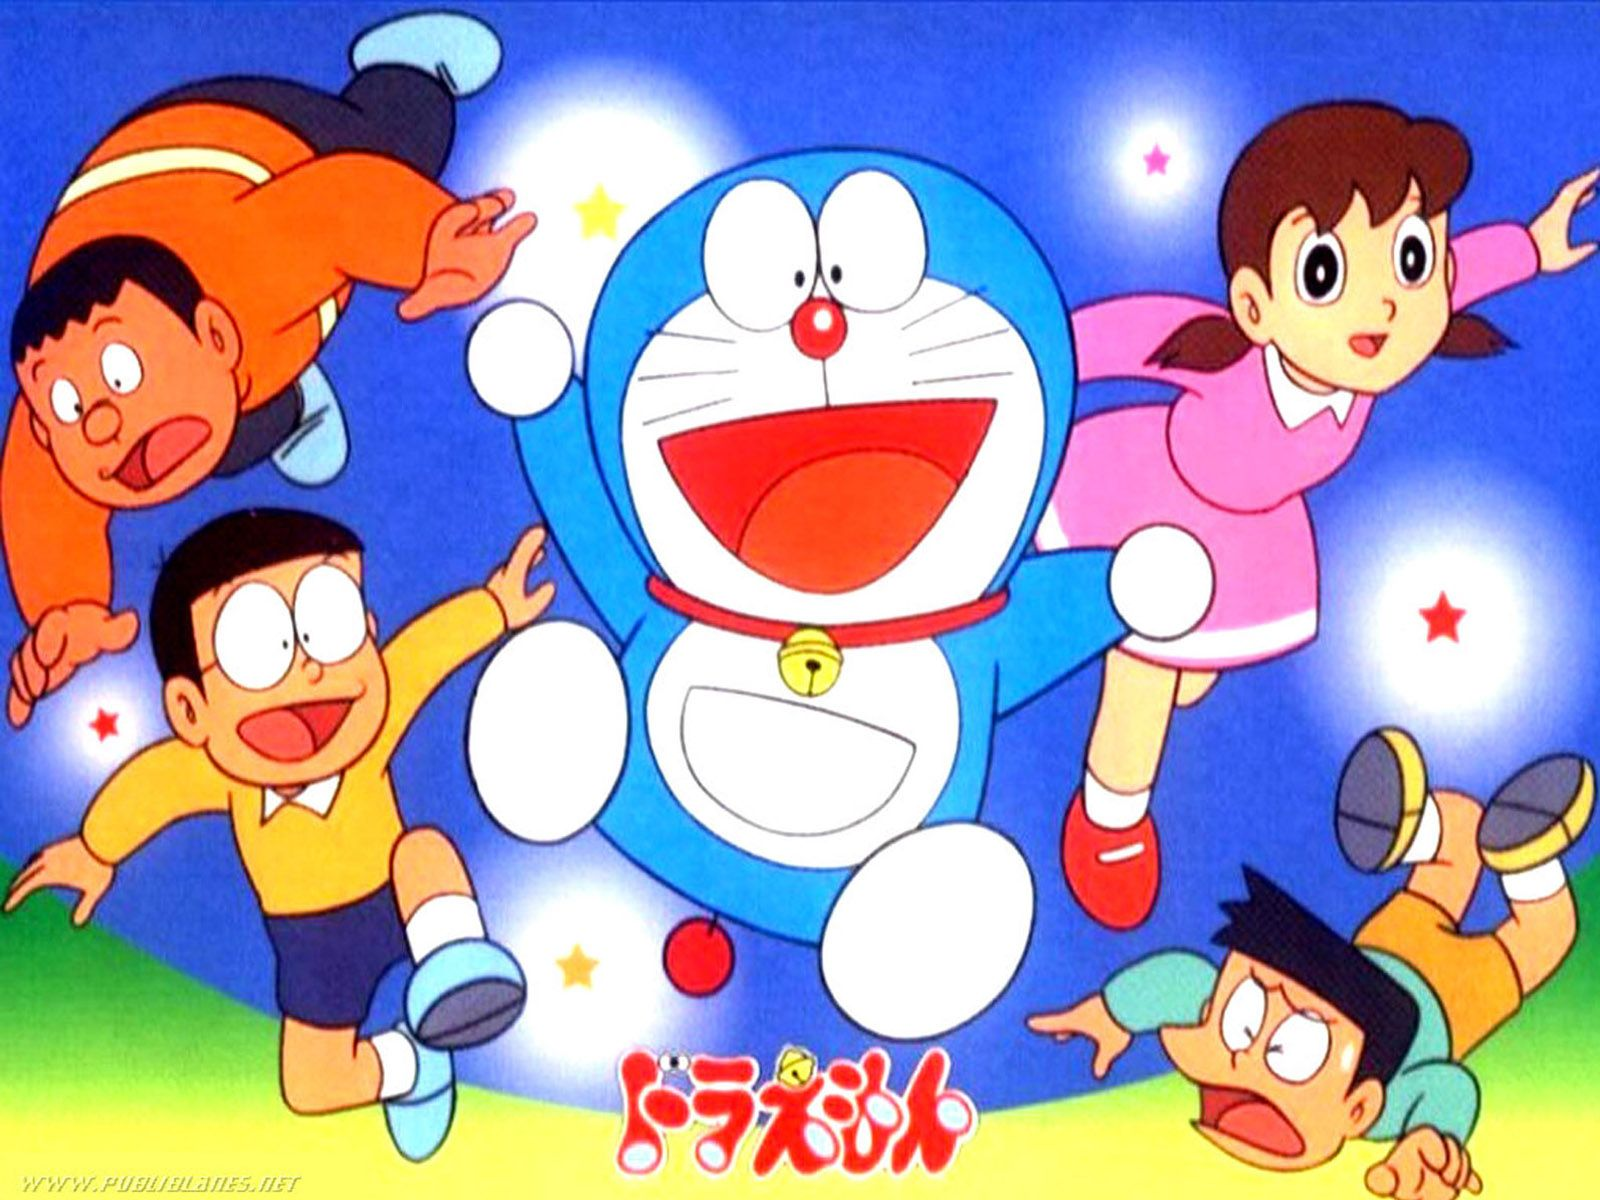 Doraemon Wallpaper wallpaper hd